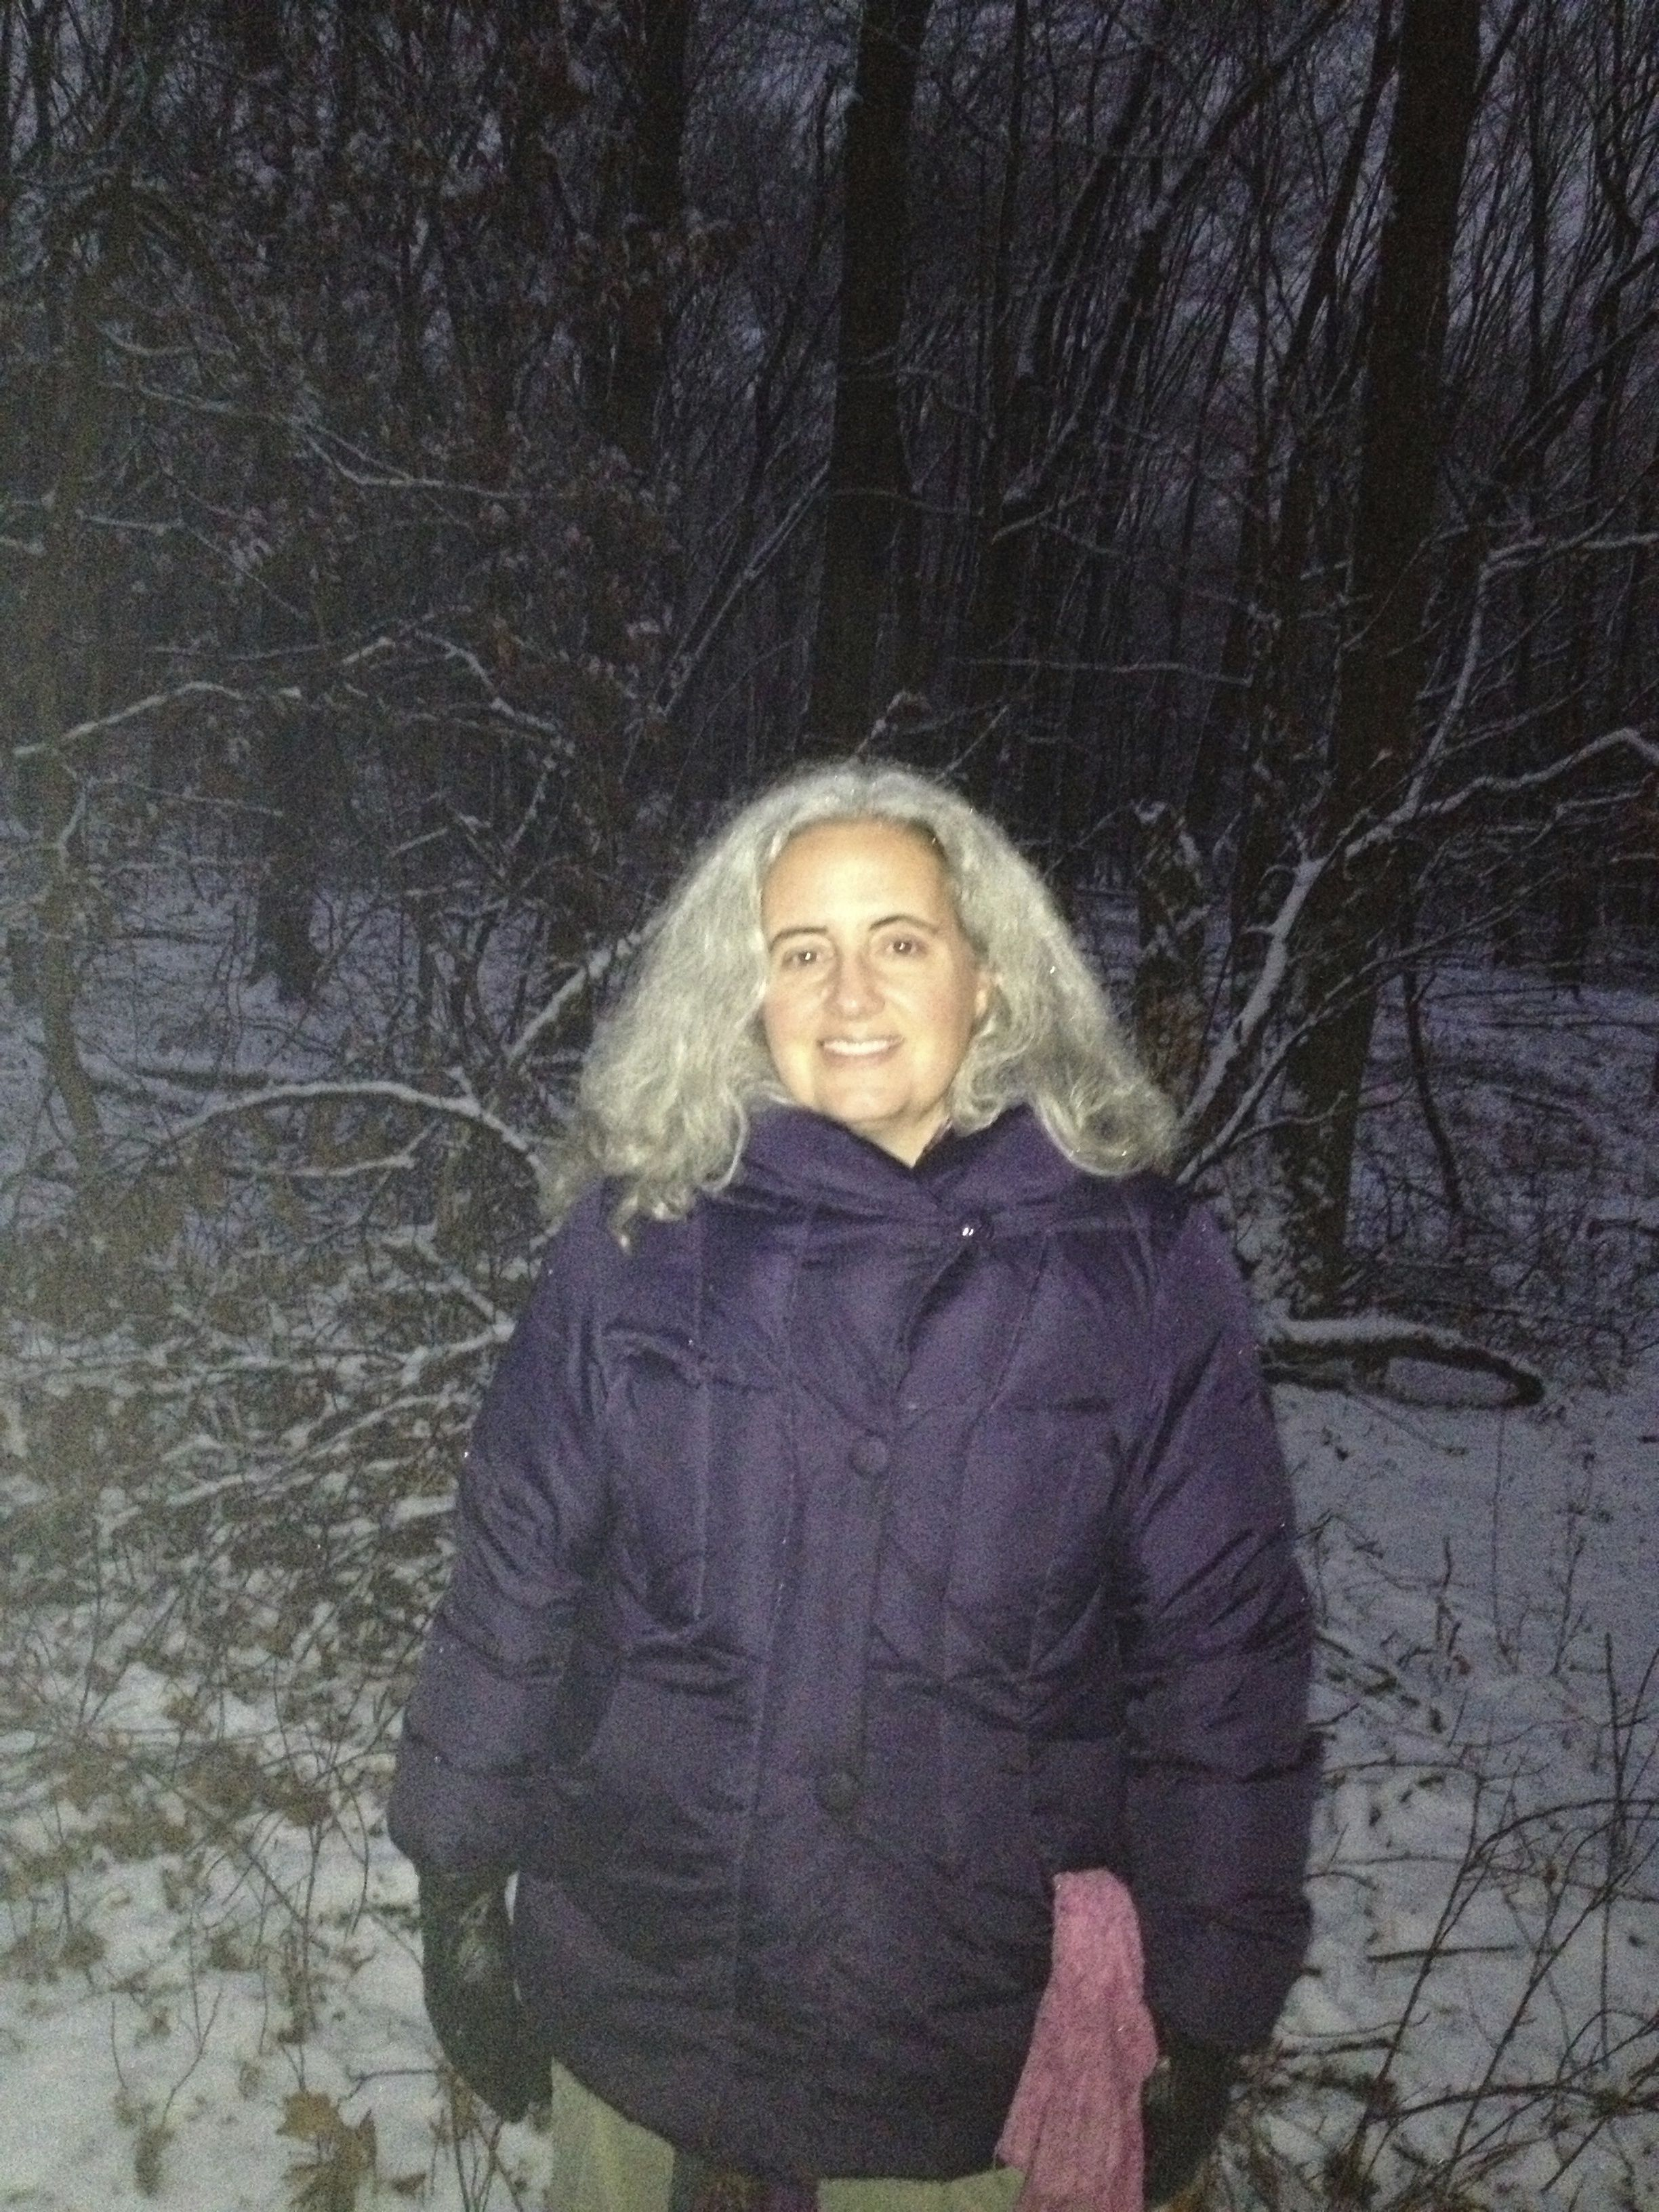 Deana Rogers walking by the snowy woods January 2013